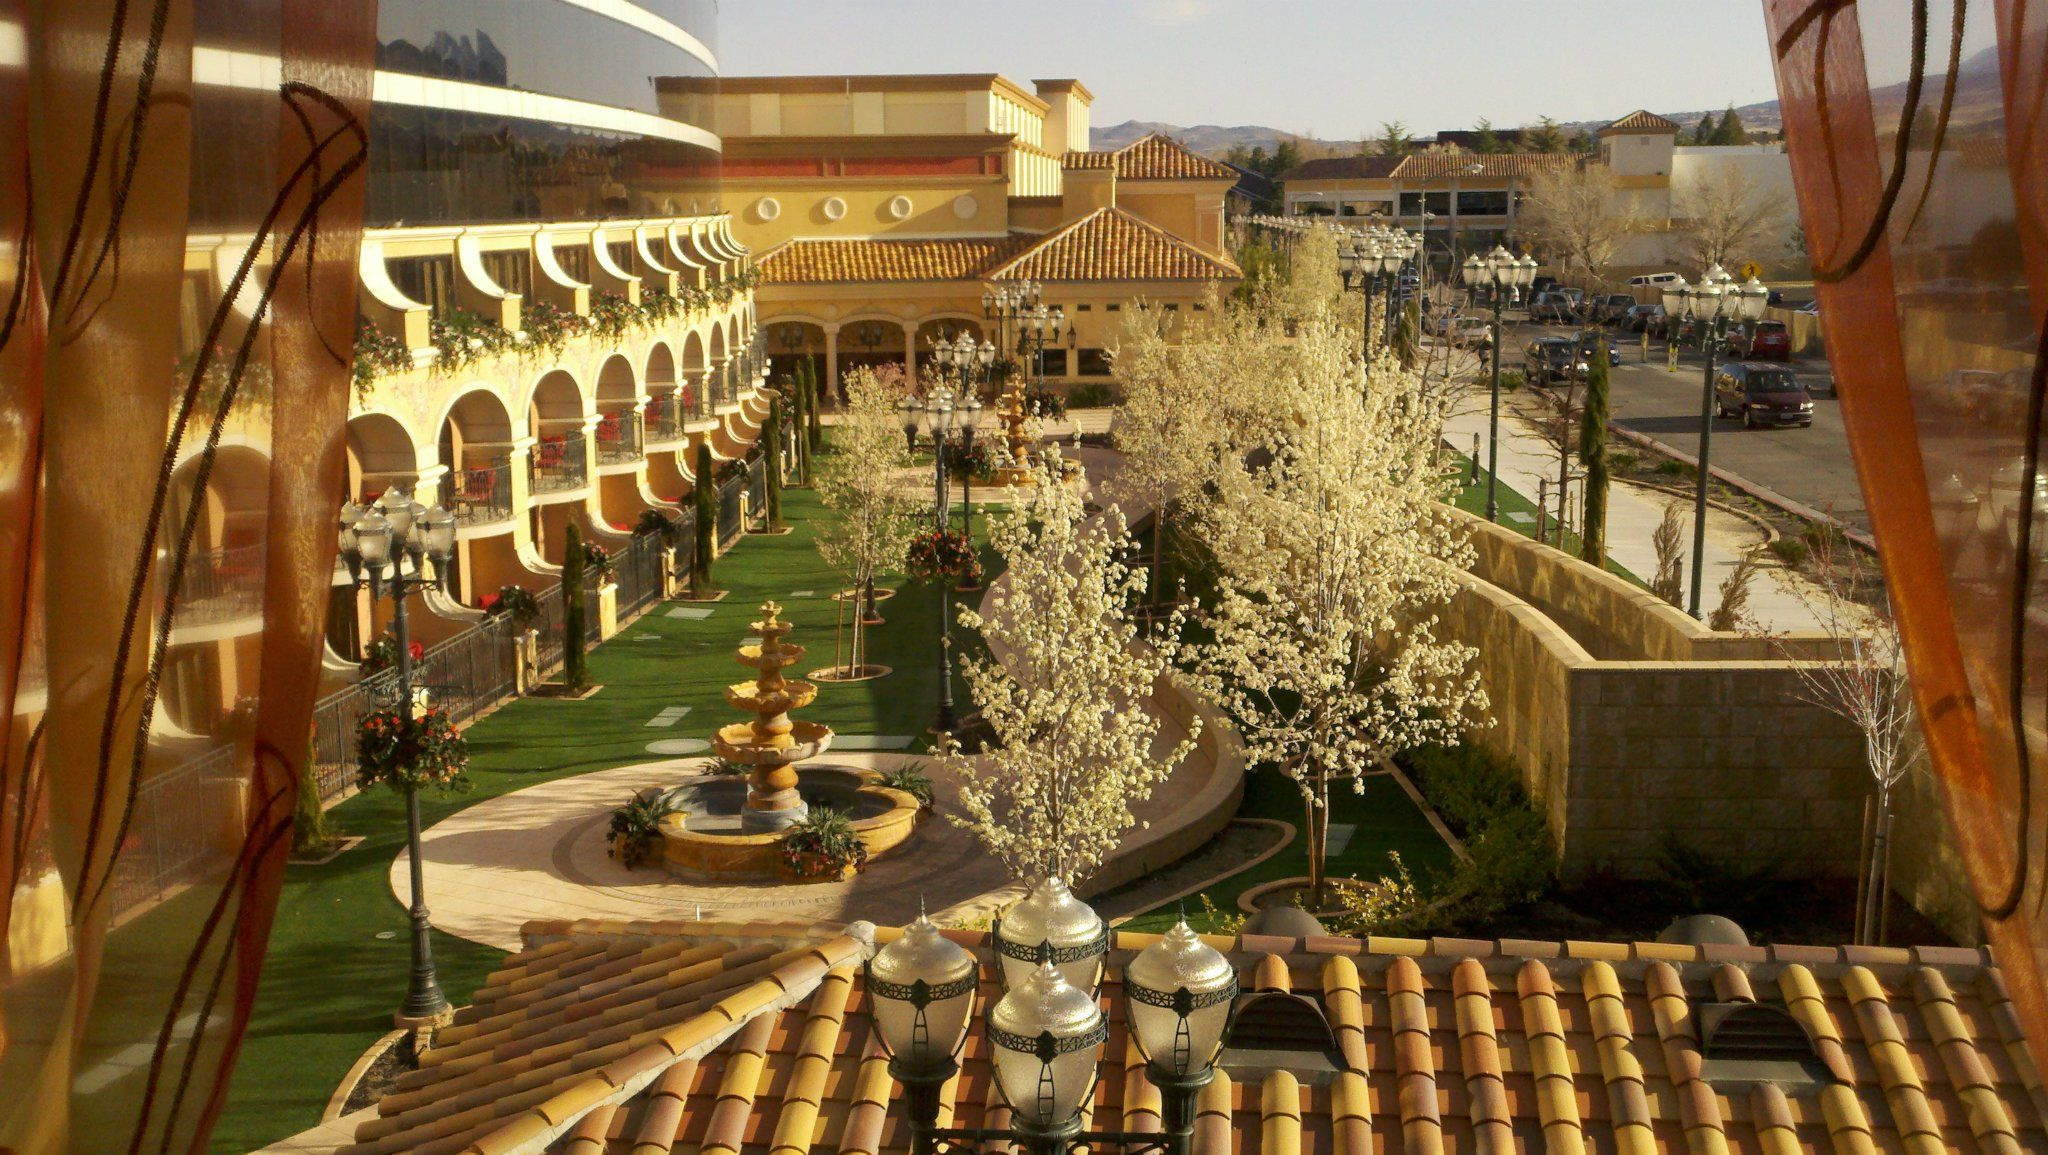 This is The Tuscany Gardens at the Peppermill Casino Resort in Reno ...